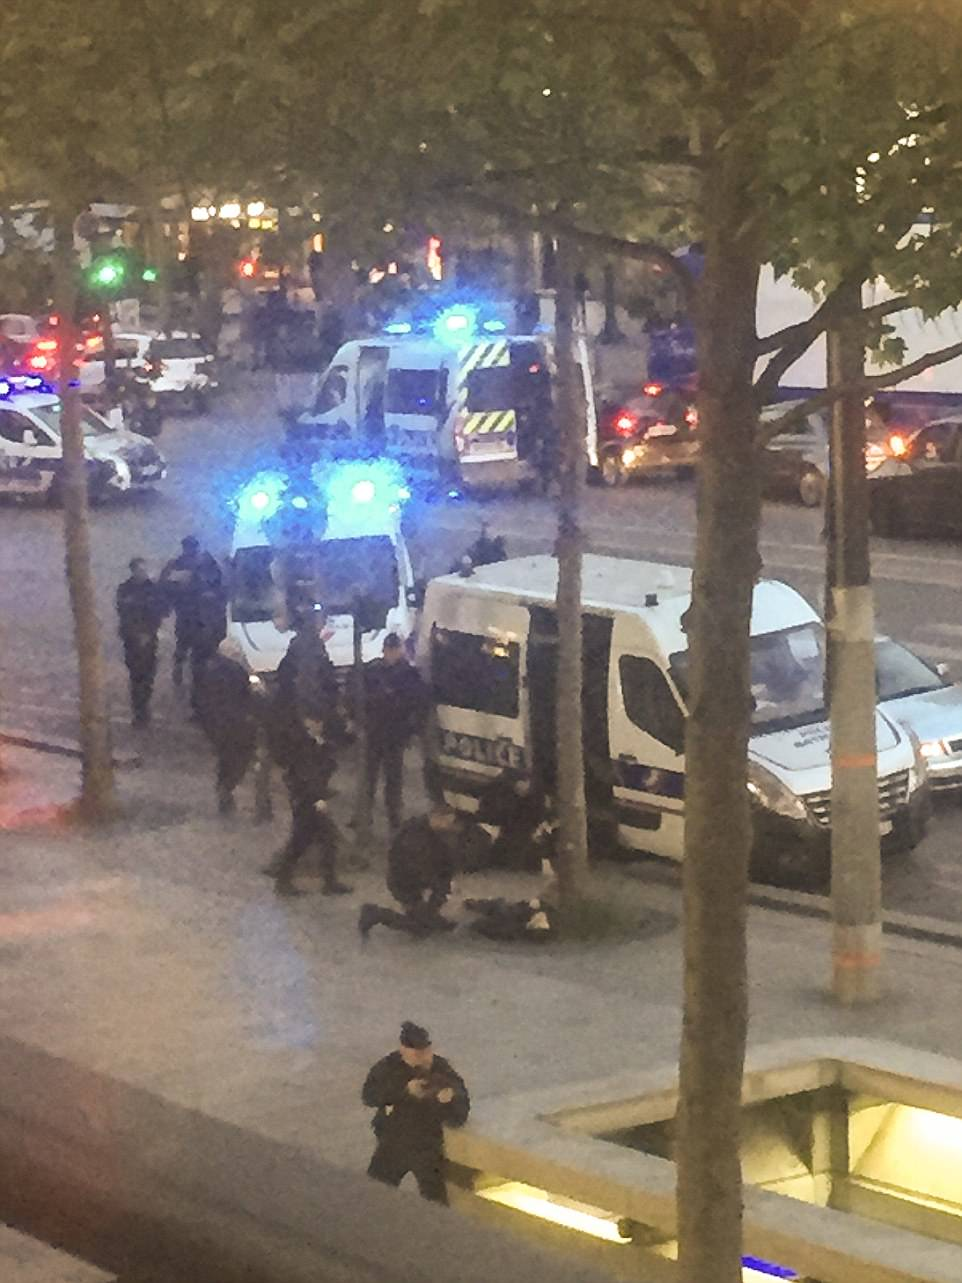 Pictured is armed police crowded two other officers, believed to have been shot in the attack, on Champs Elysees on Thursday night